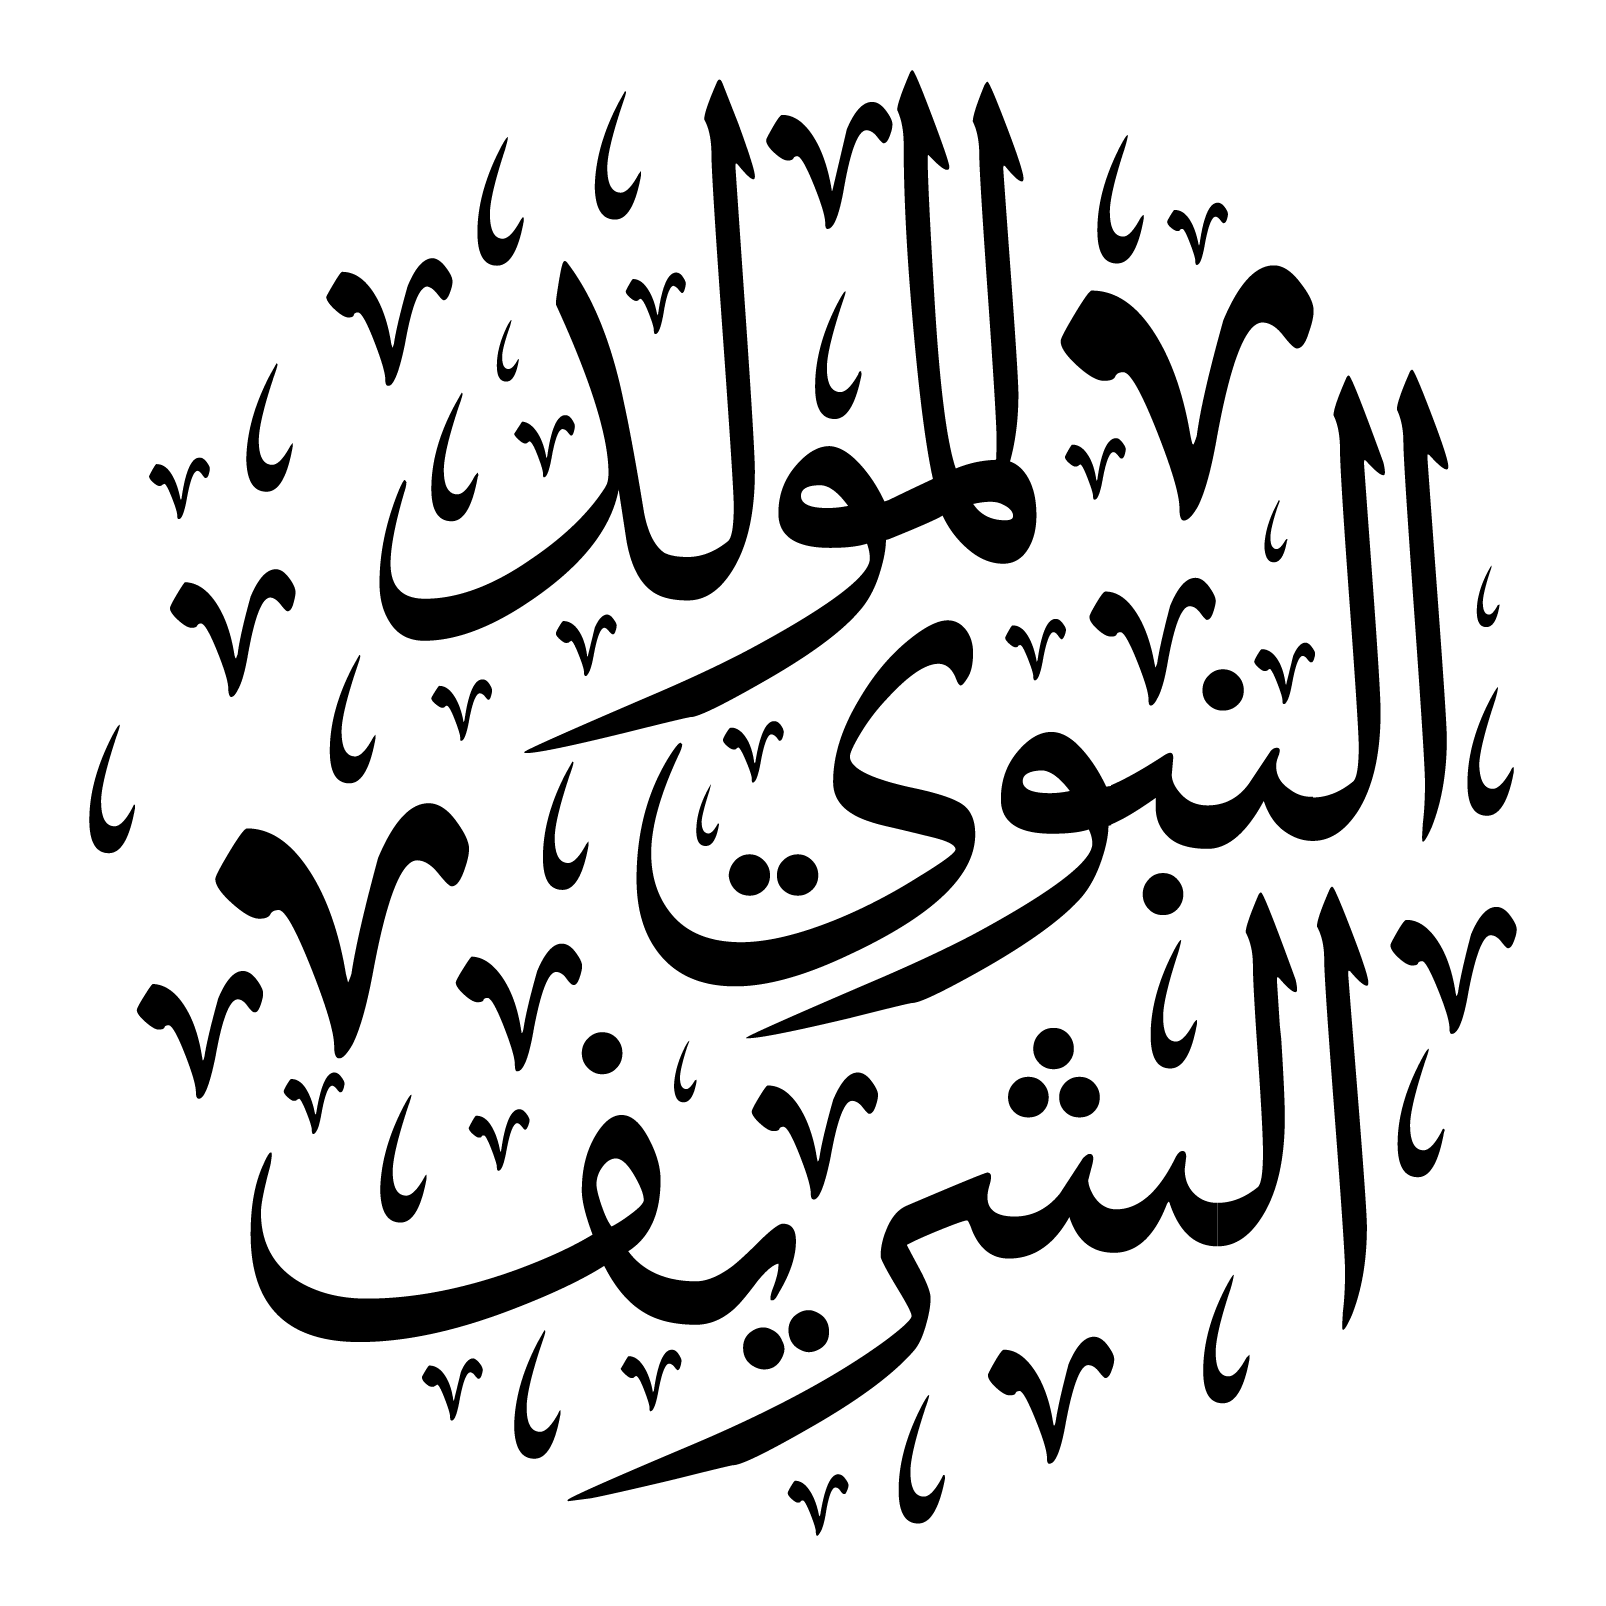 scripts almuld alnubawiu alsharif islamic svg eps psd ai pdf png vector download free #islamic #islam #arab #arabic #vector #vectors  #scripts #design #fonts #font #happy #hijri #year